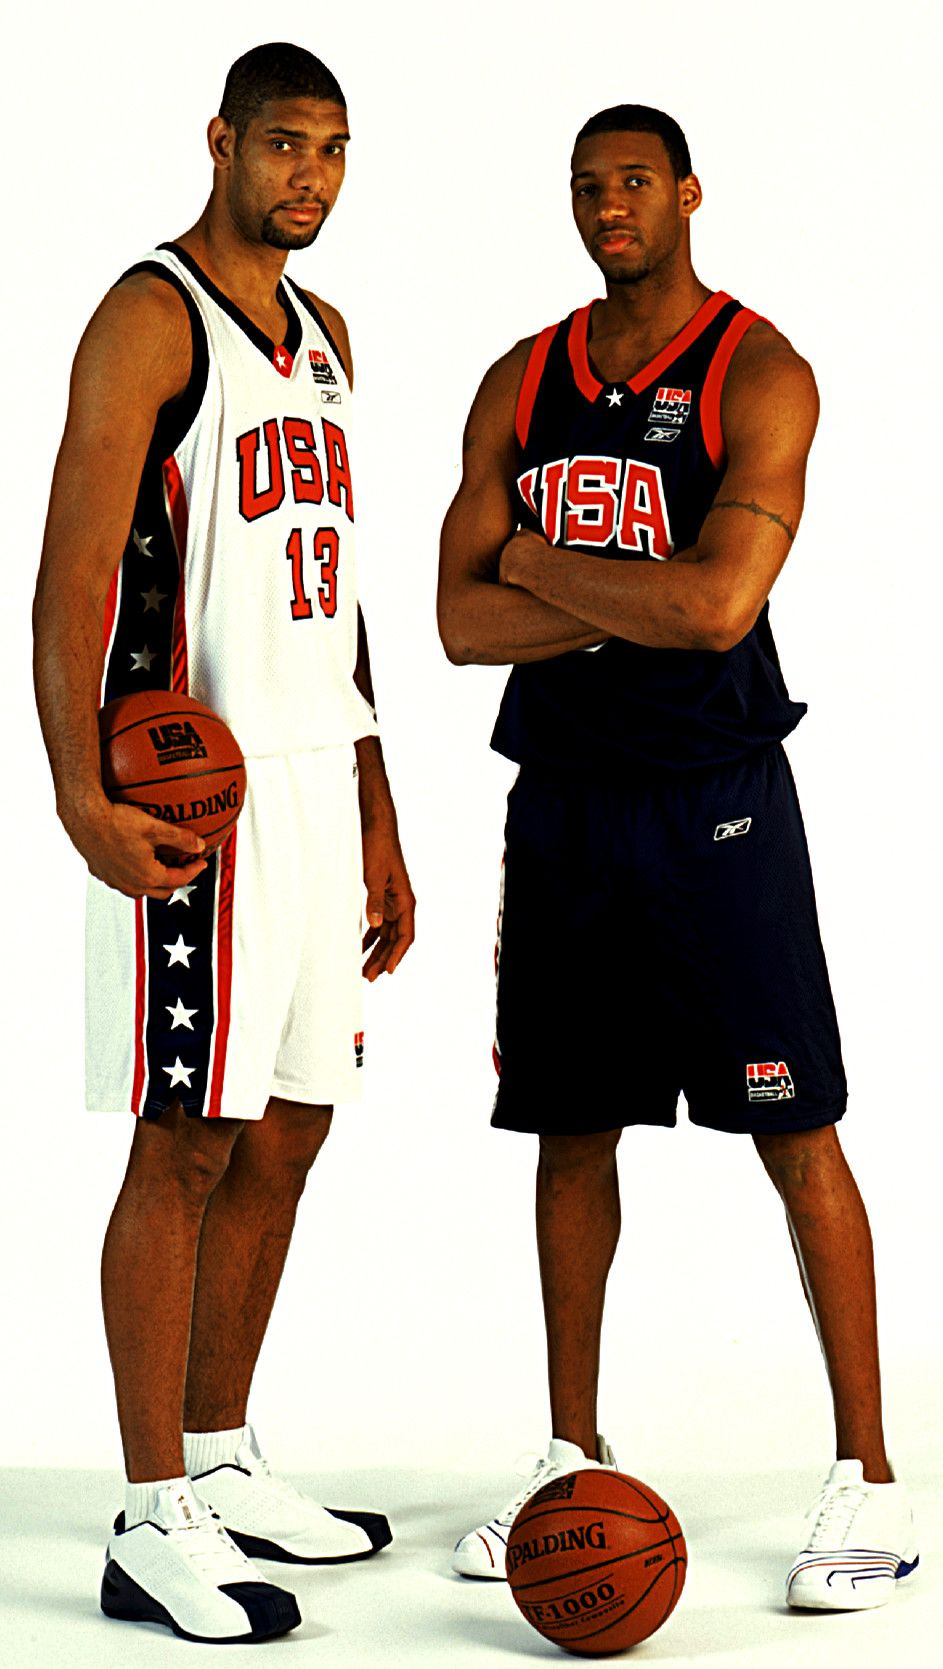 innovative design 9cd6f 56b3a Tim Duncan and Tracy McGrady. Who also became a Spur before he retired. 😊